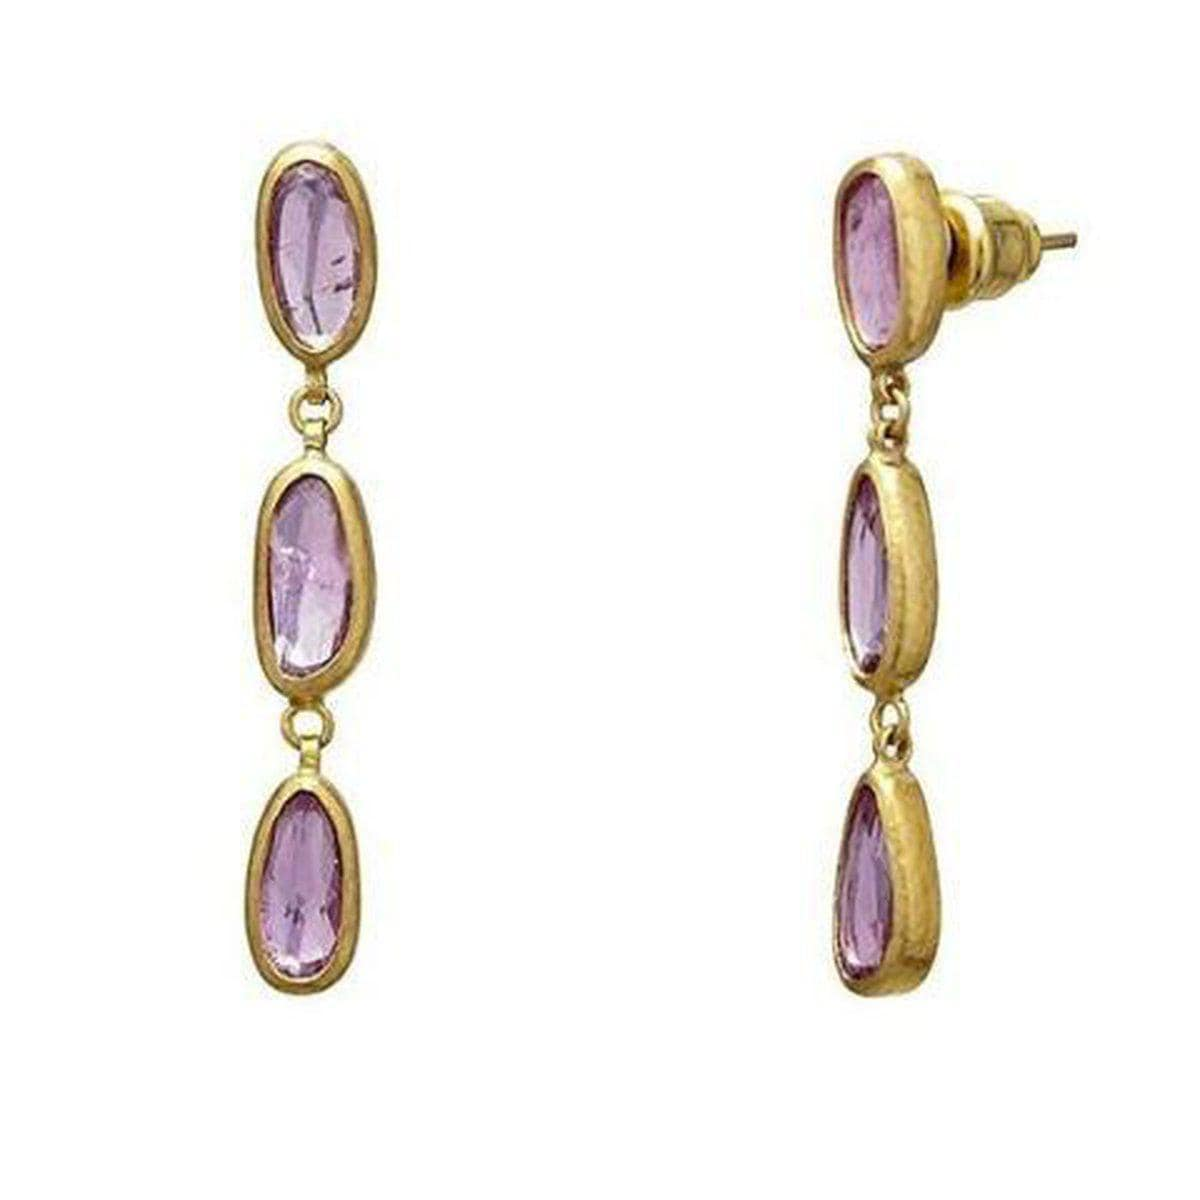 Elements 24K Gold Sapphire Earrings - E-U25259-FSA-GURHAN-Renee Taylor Gallery